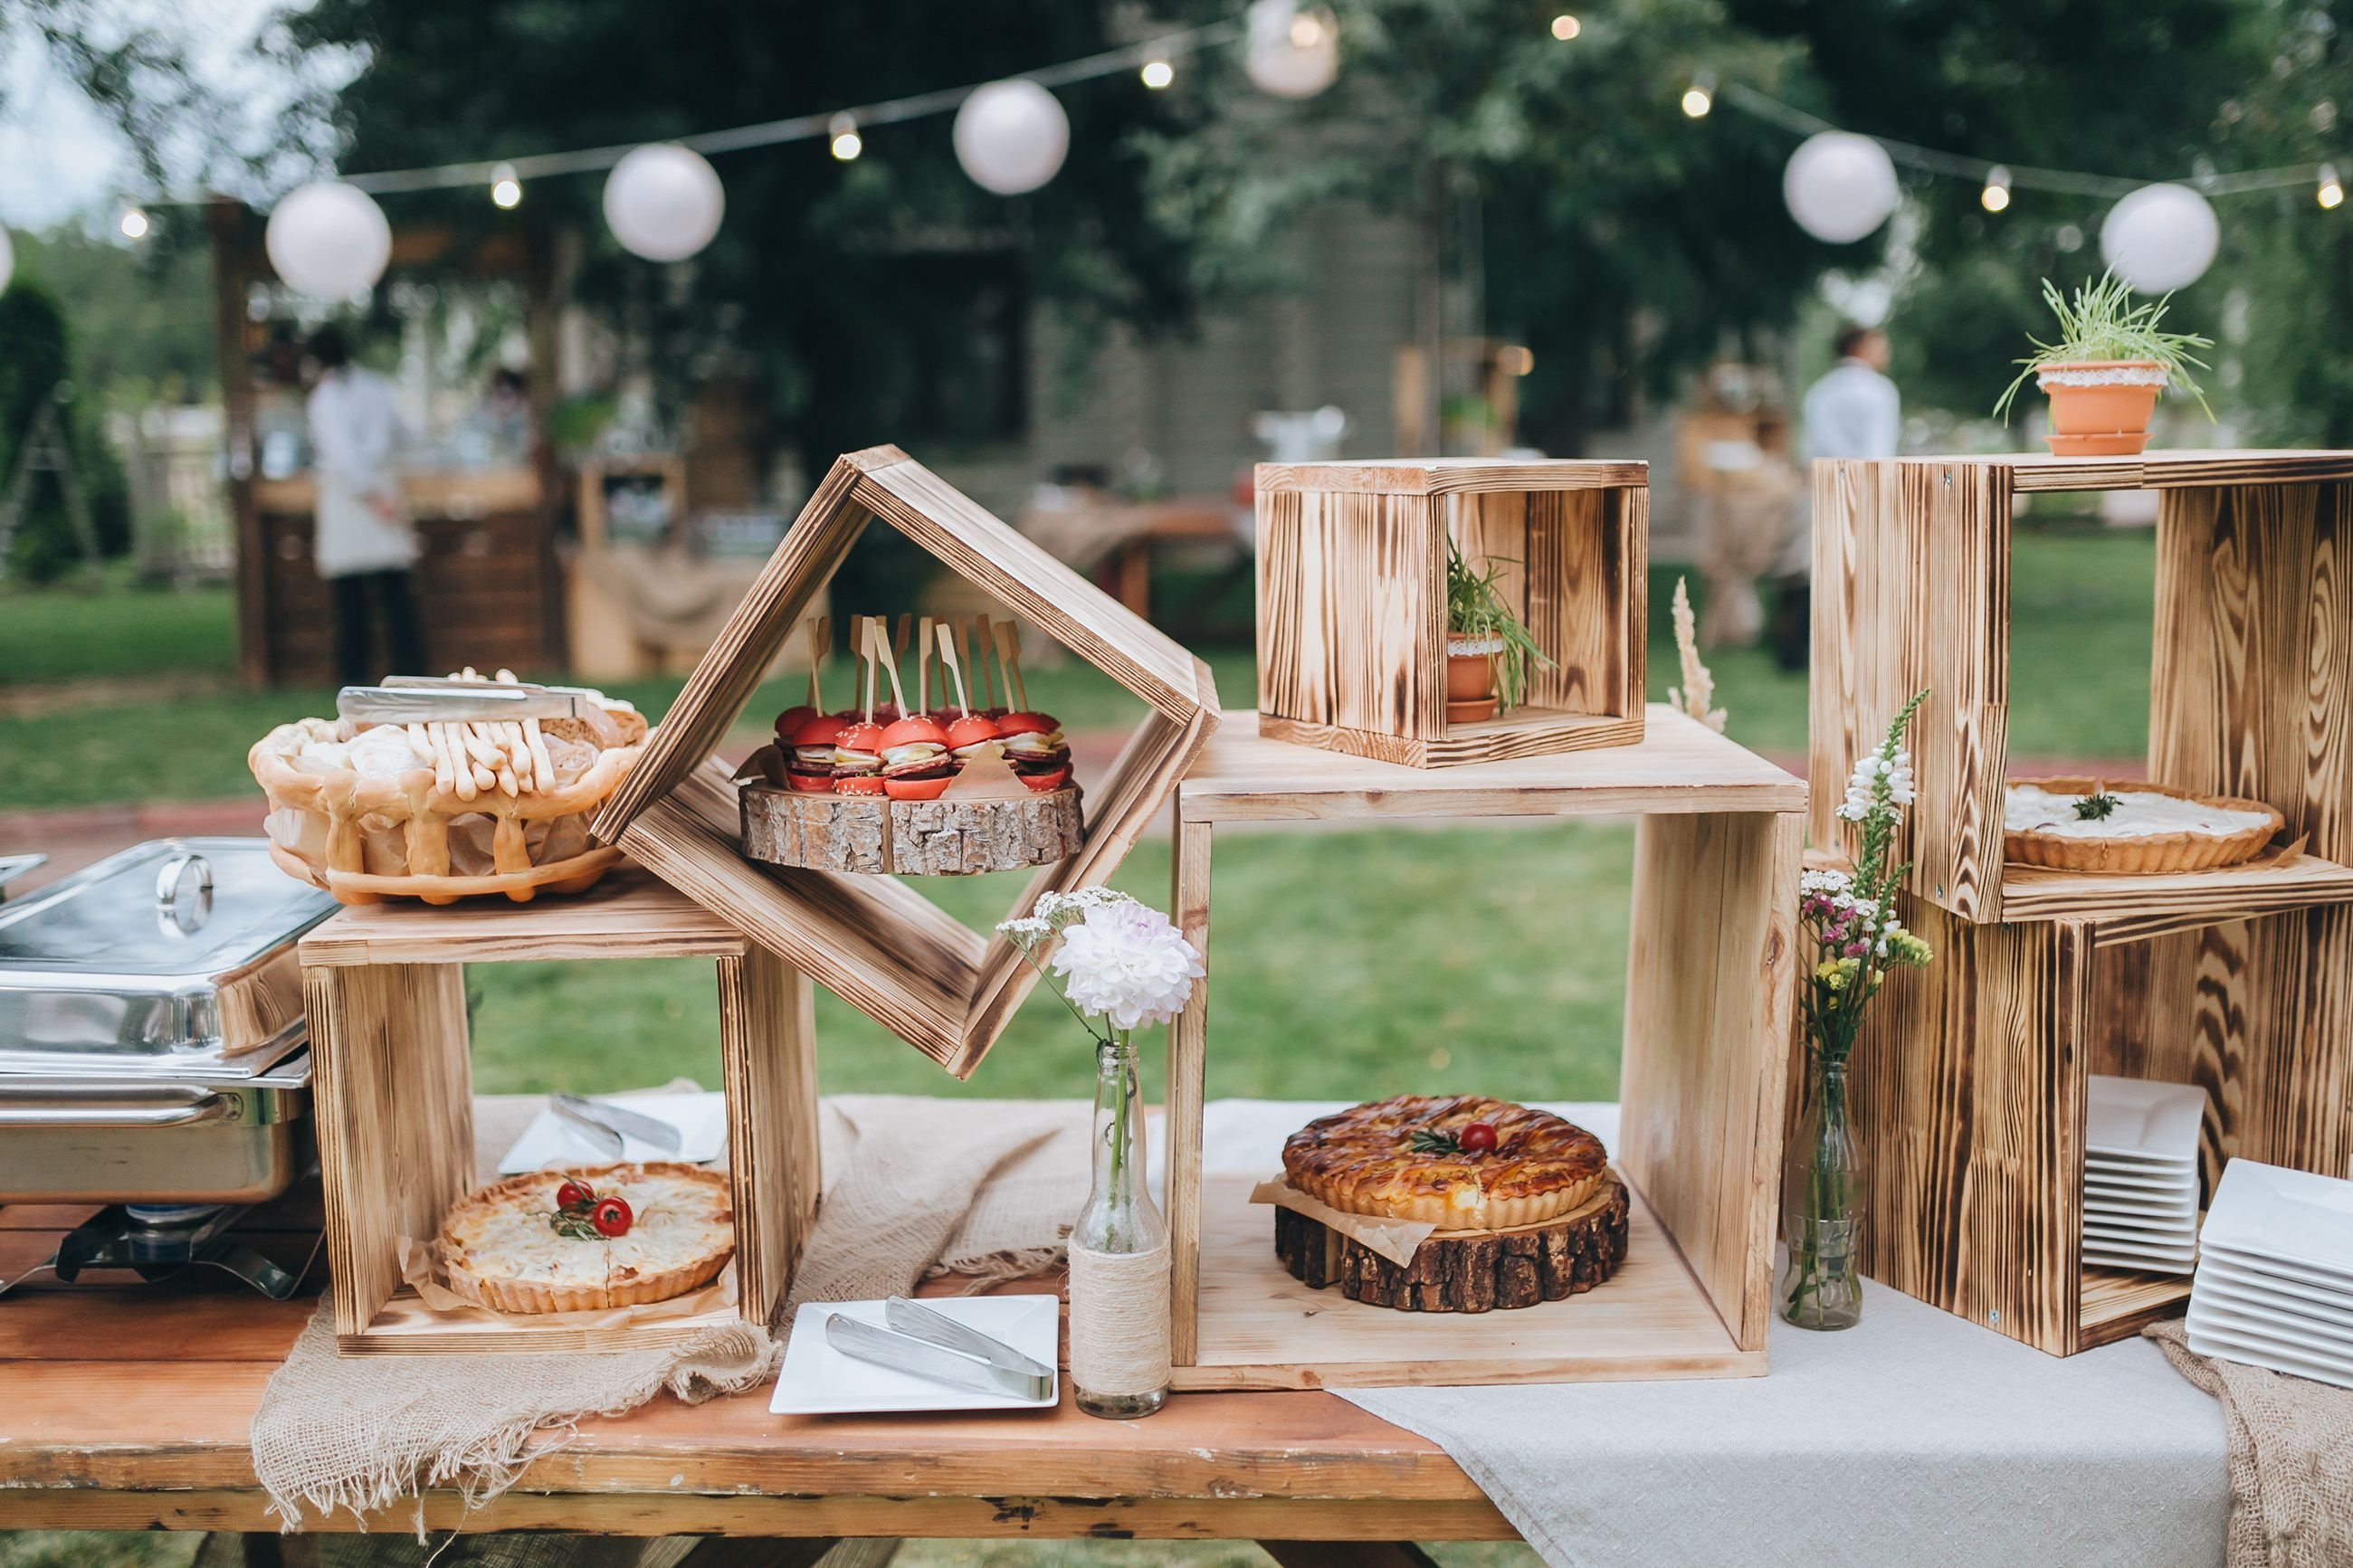 Barn wedding table settings  A rustic inspired dessert table is perfect for a garden wedding